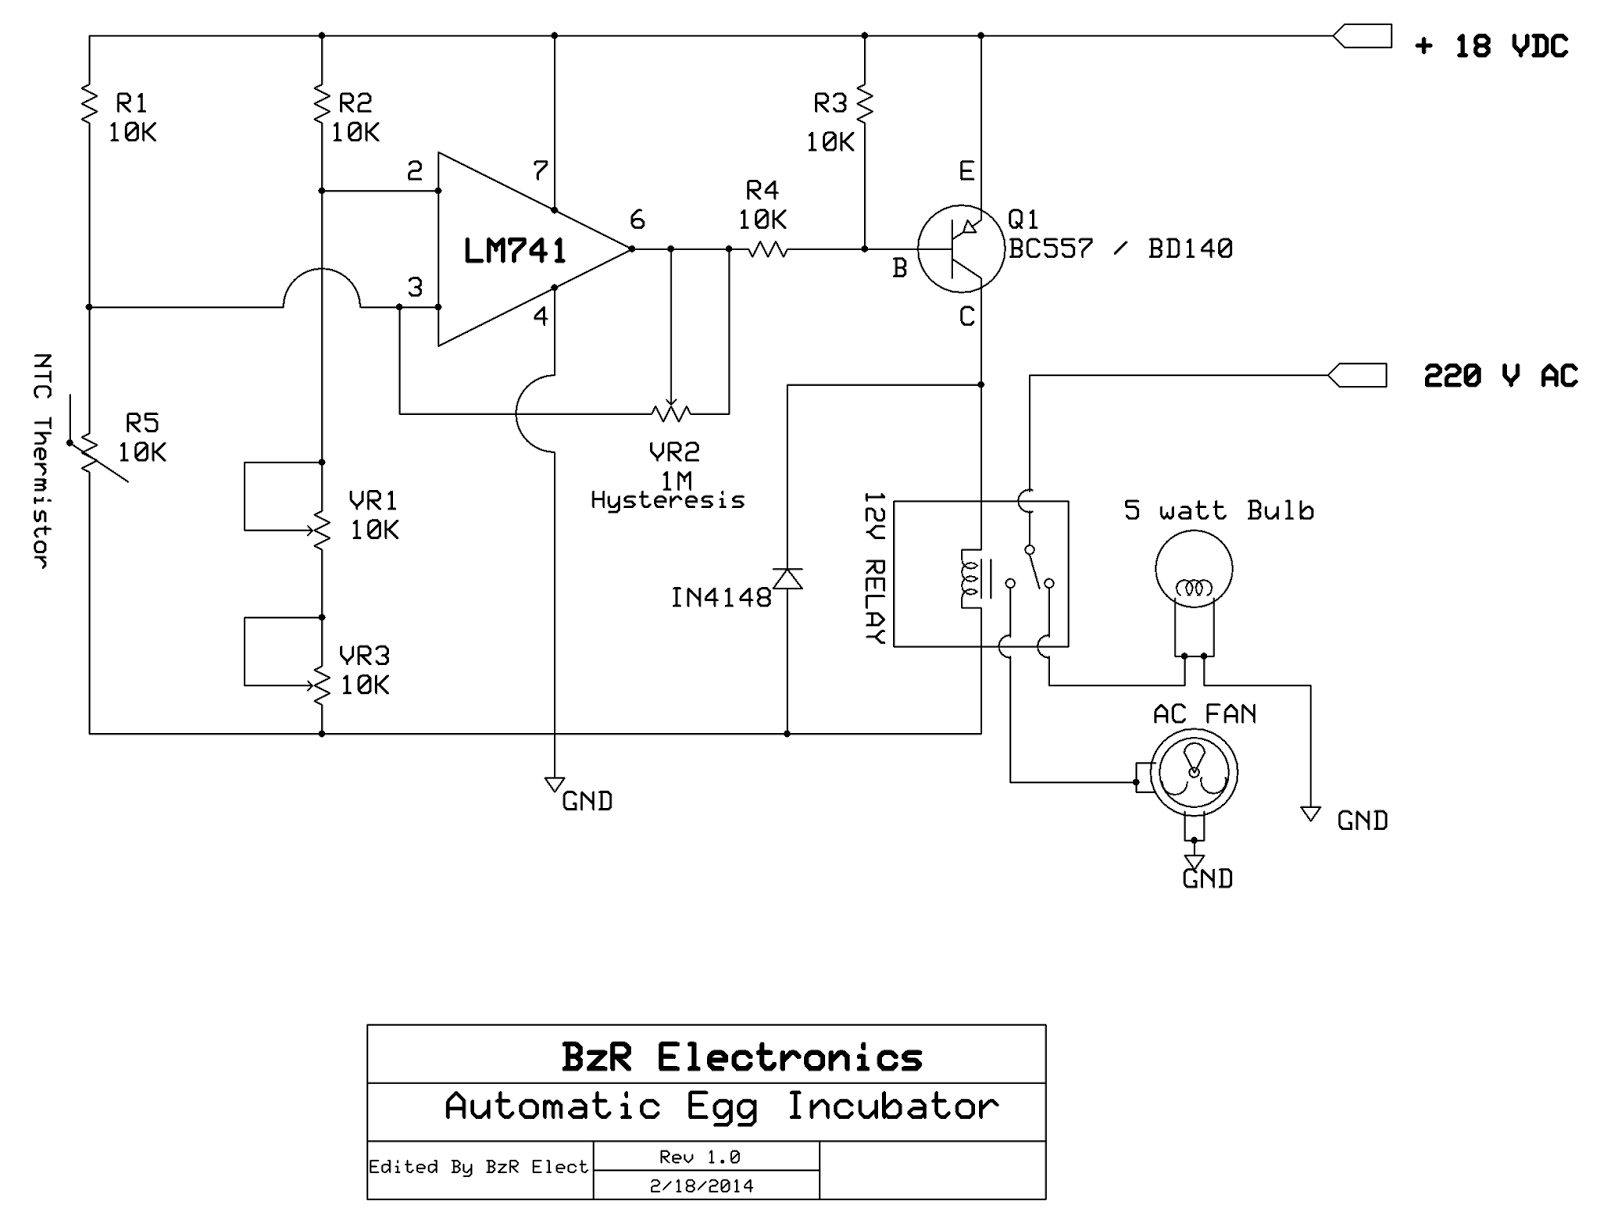 Groovy Eggs Automatic Incubator Circuit Diagram 3 Electricalequipment Wiring Digital Resources Funapmognl